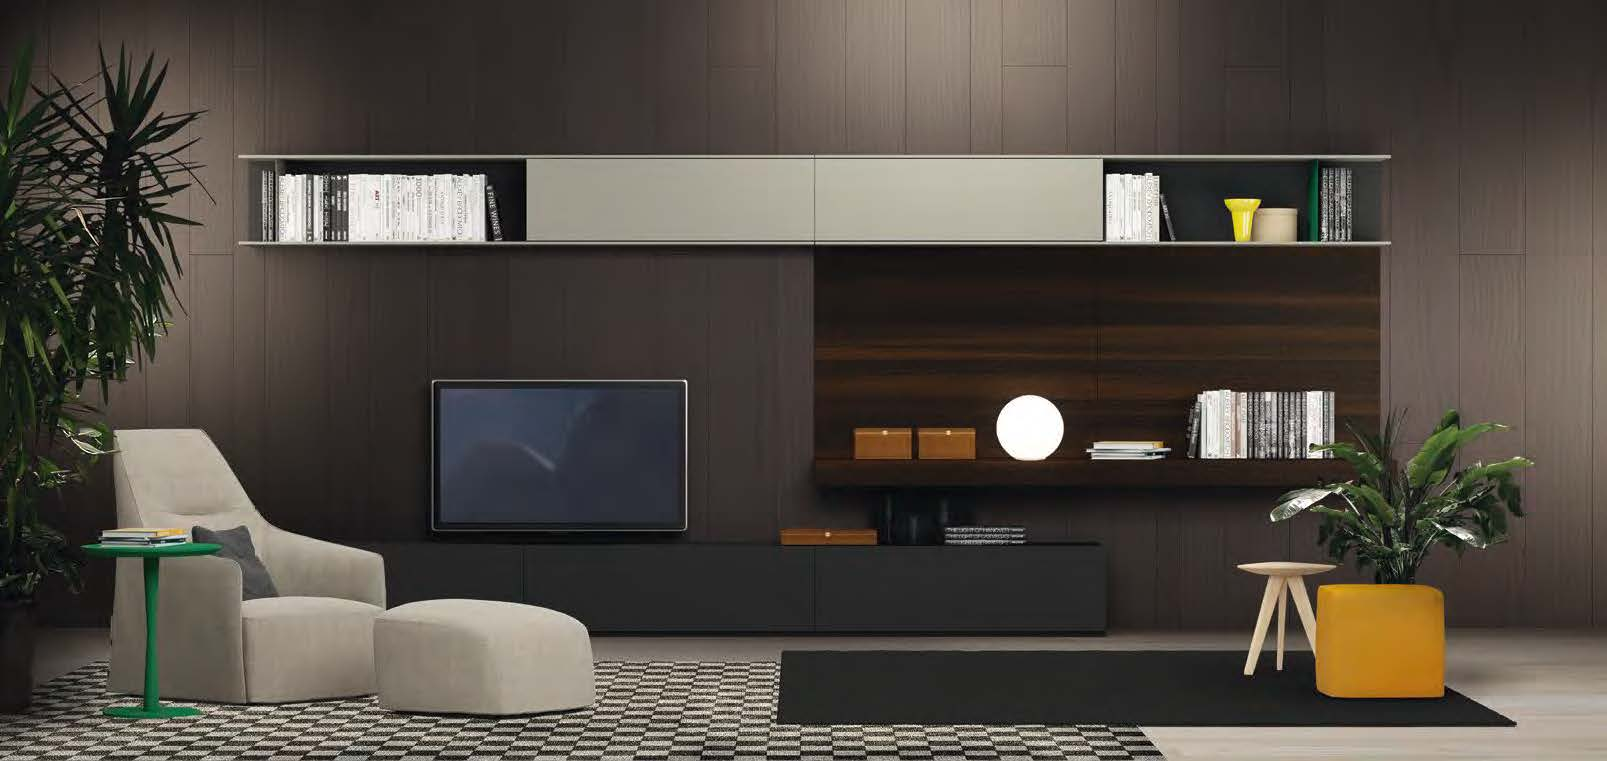 day system web pagina 31 immagine 0001. Black Bedroom Furniture Sets. Home Design Ideas